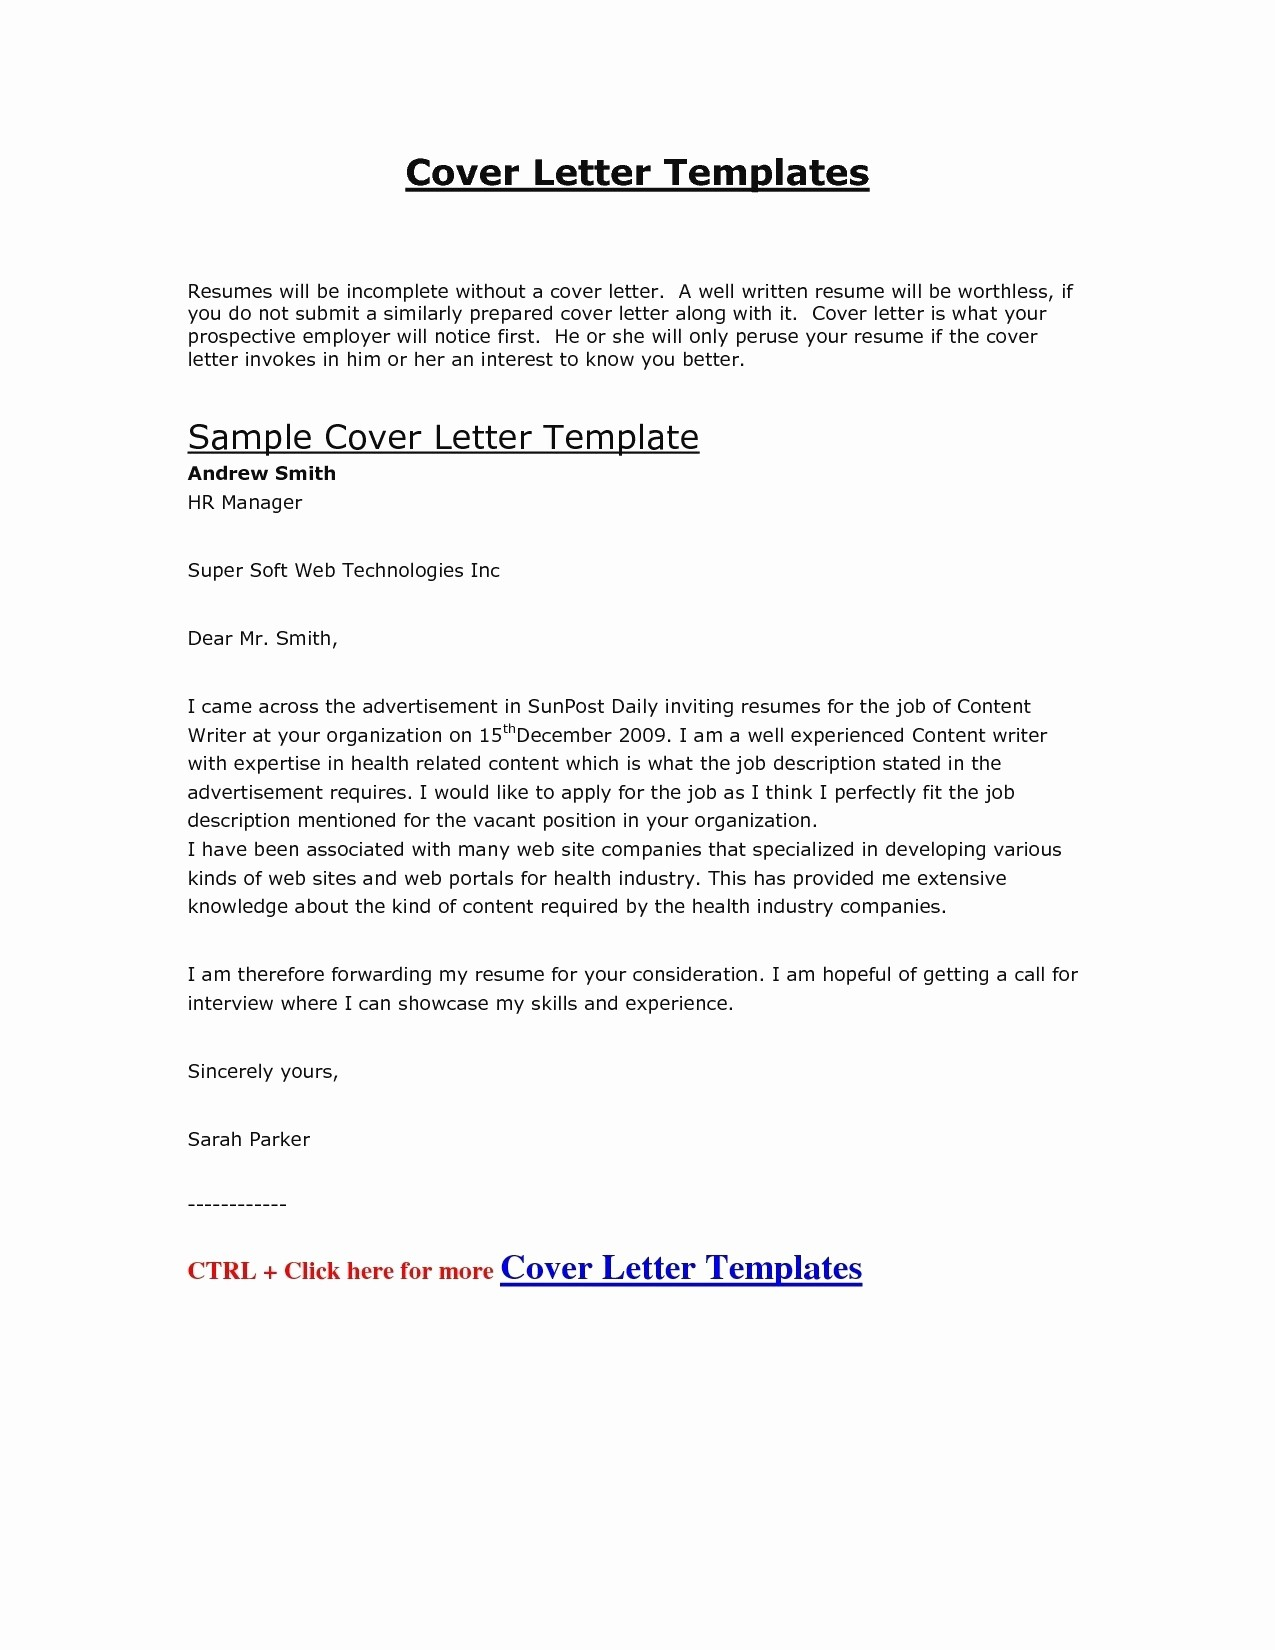 Job Letter Template - A Good Cover Letter Examples Cover Letter Sample Free and Resume